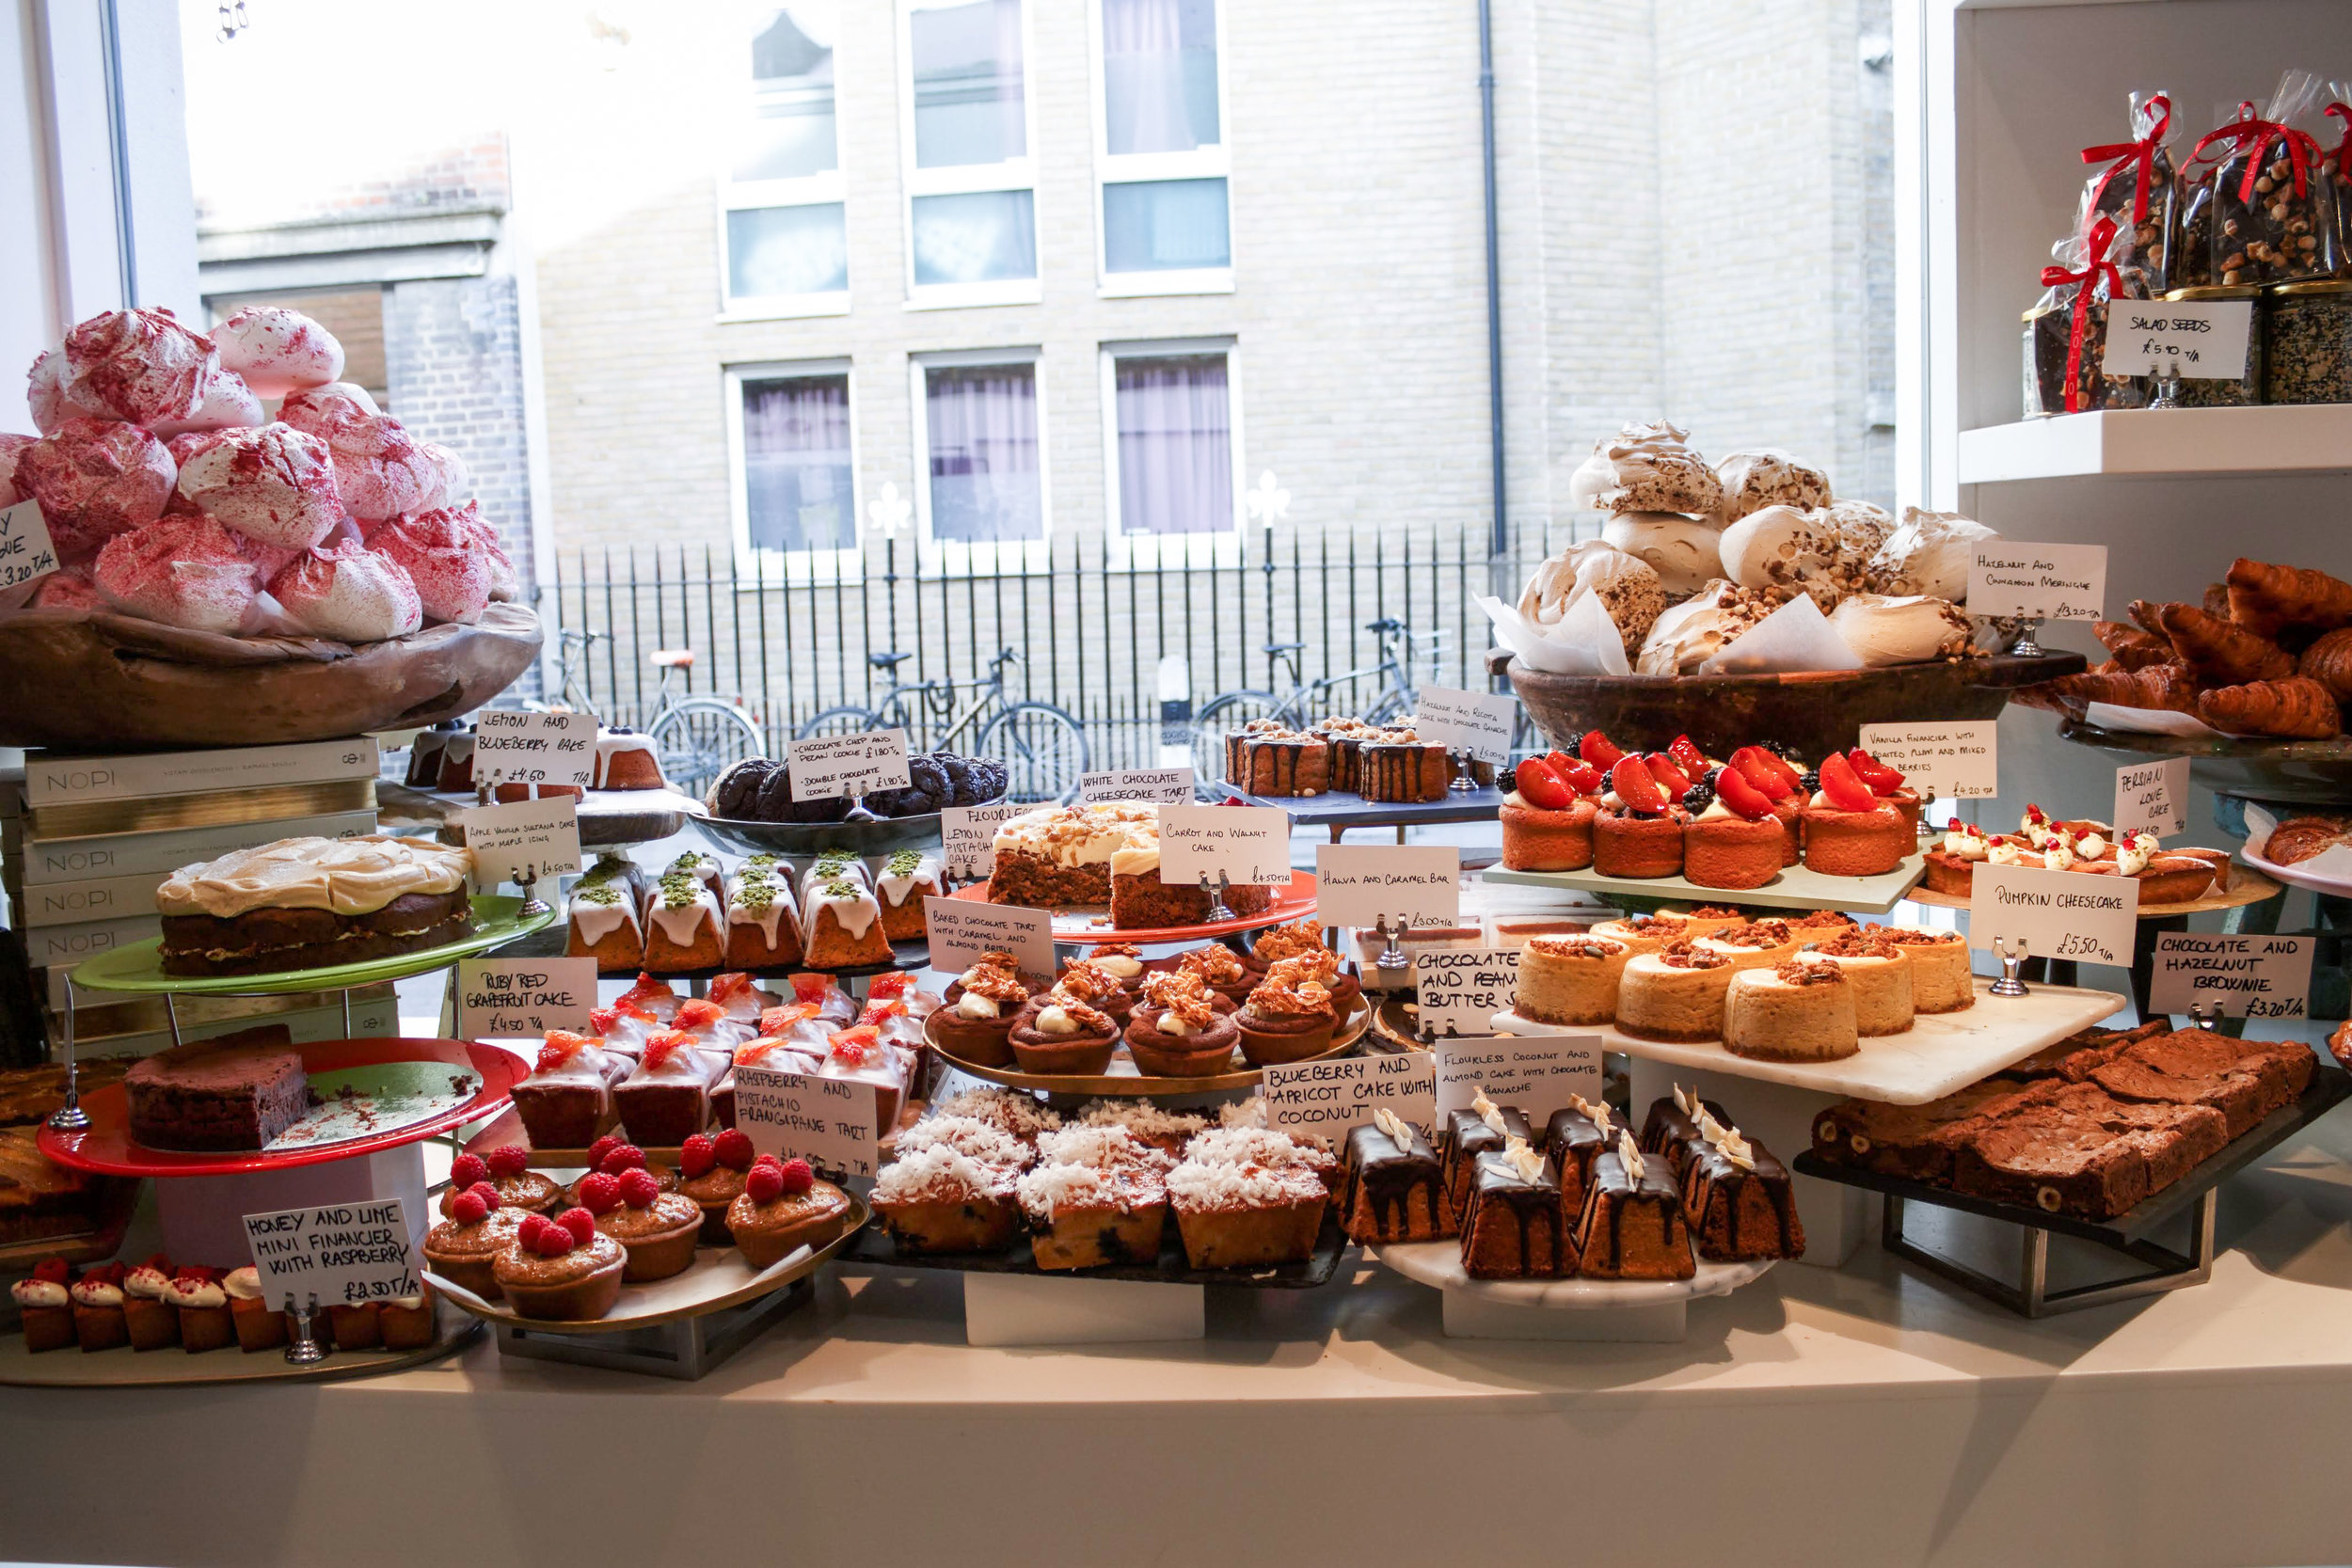 The dessert spread at Ottolenghi Spitalfields